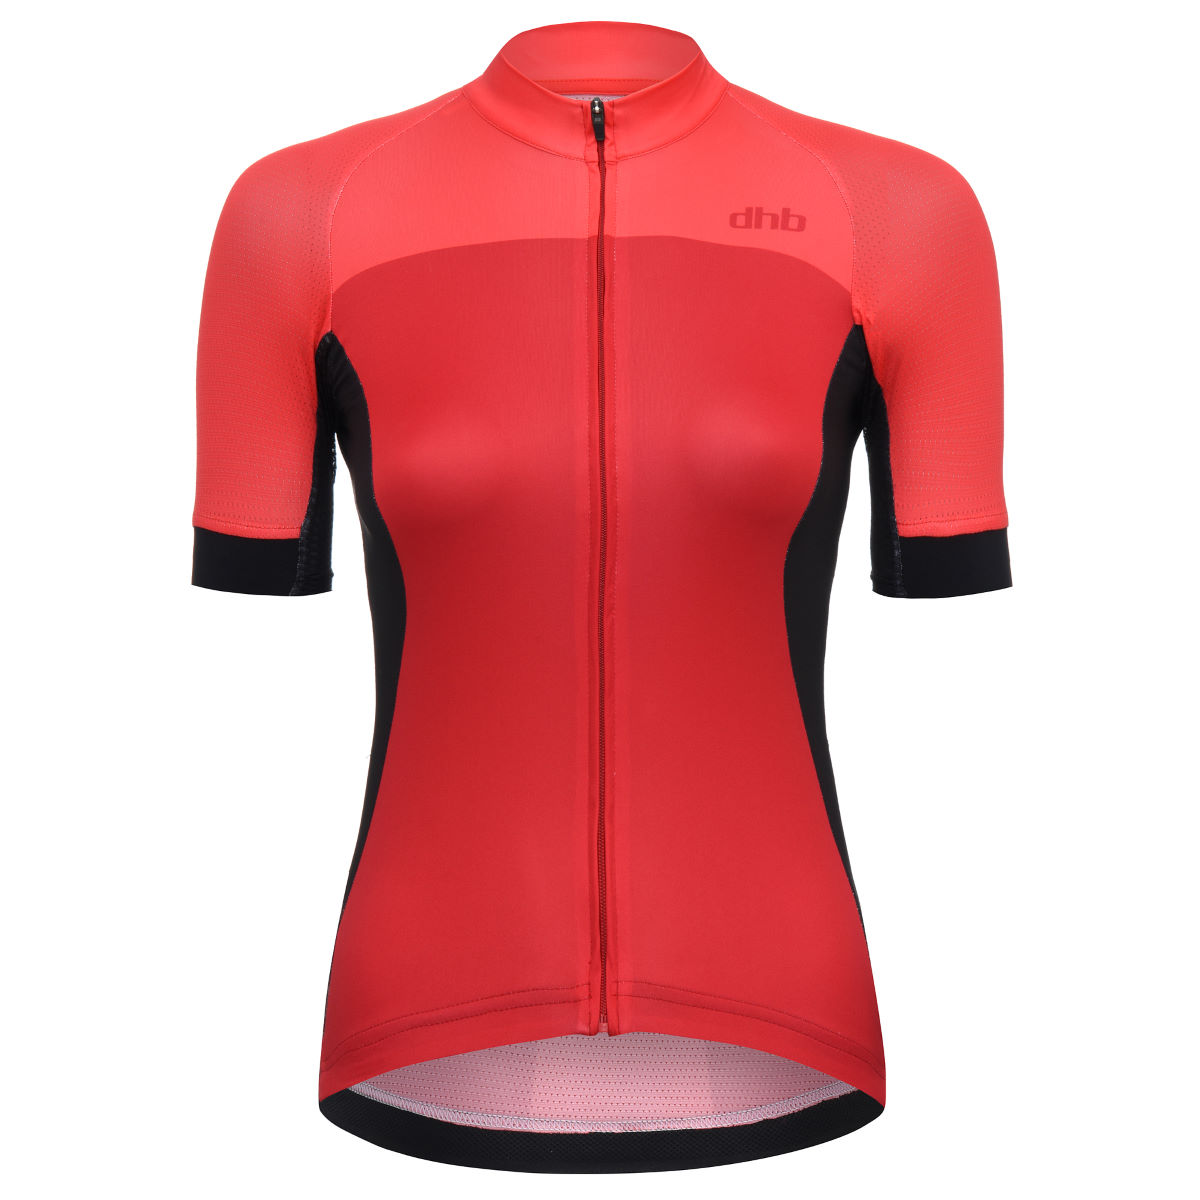 Maillot Femme dhb Aeron Speed (manches courtes) - UK 10 Coral Pink